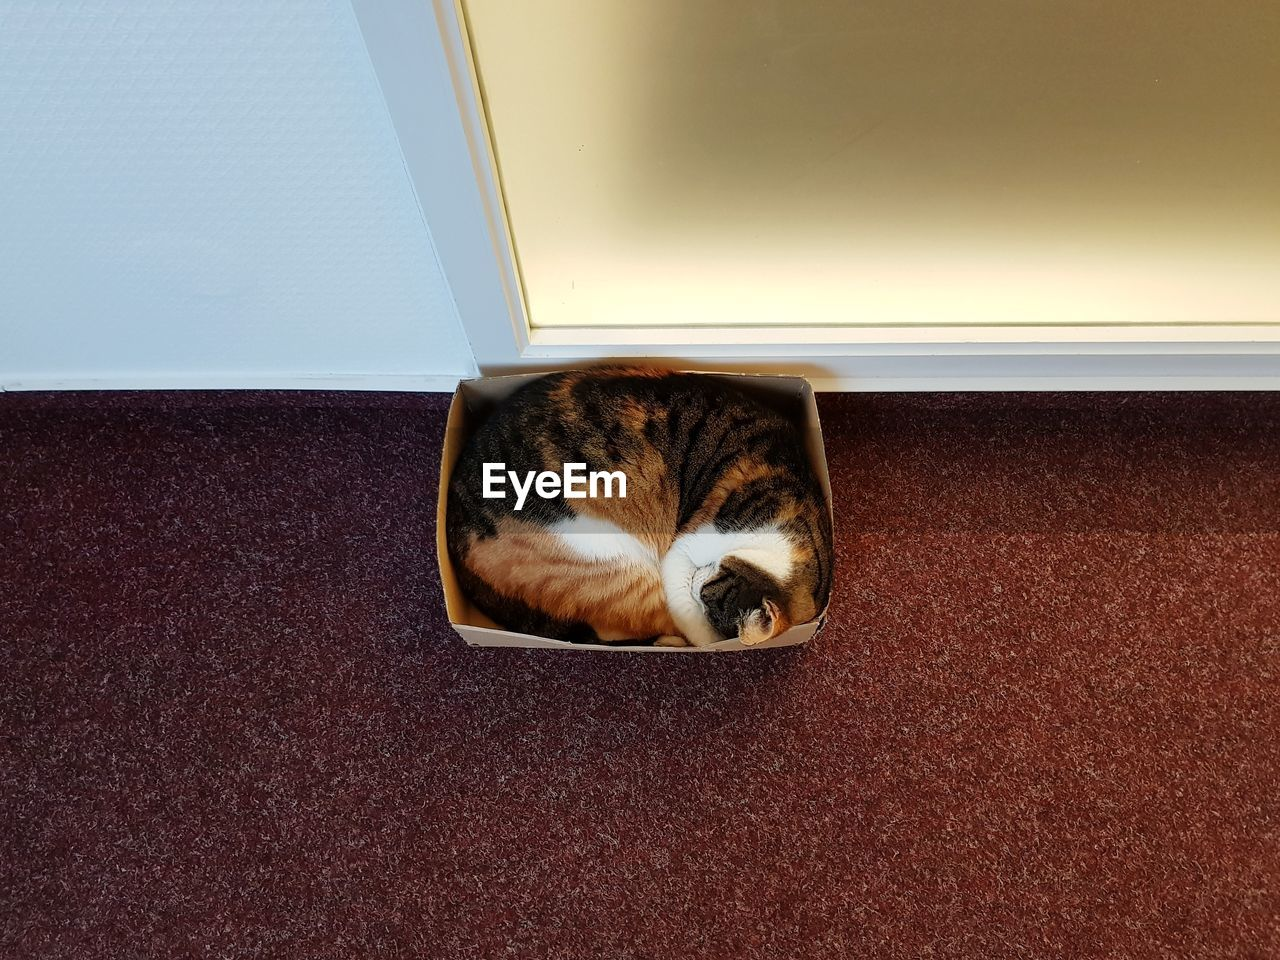 High angle view of cat resting on floor